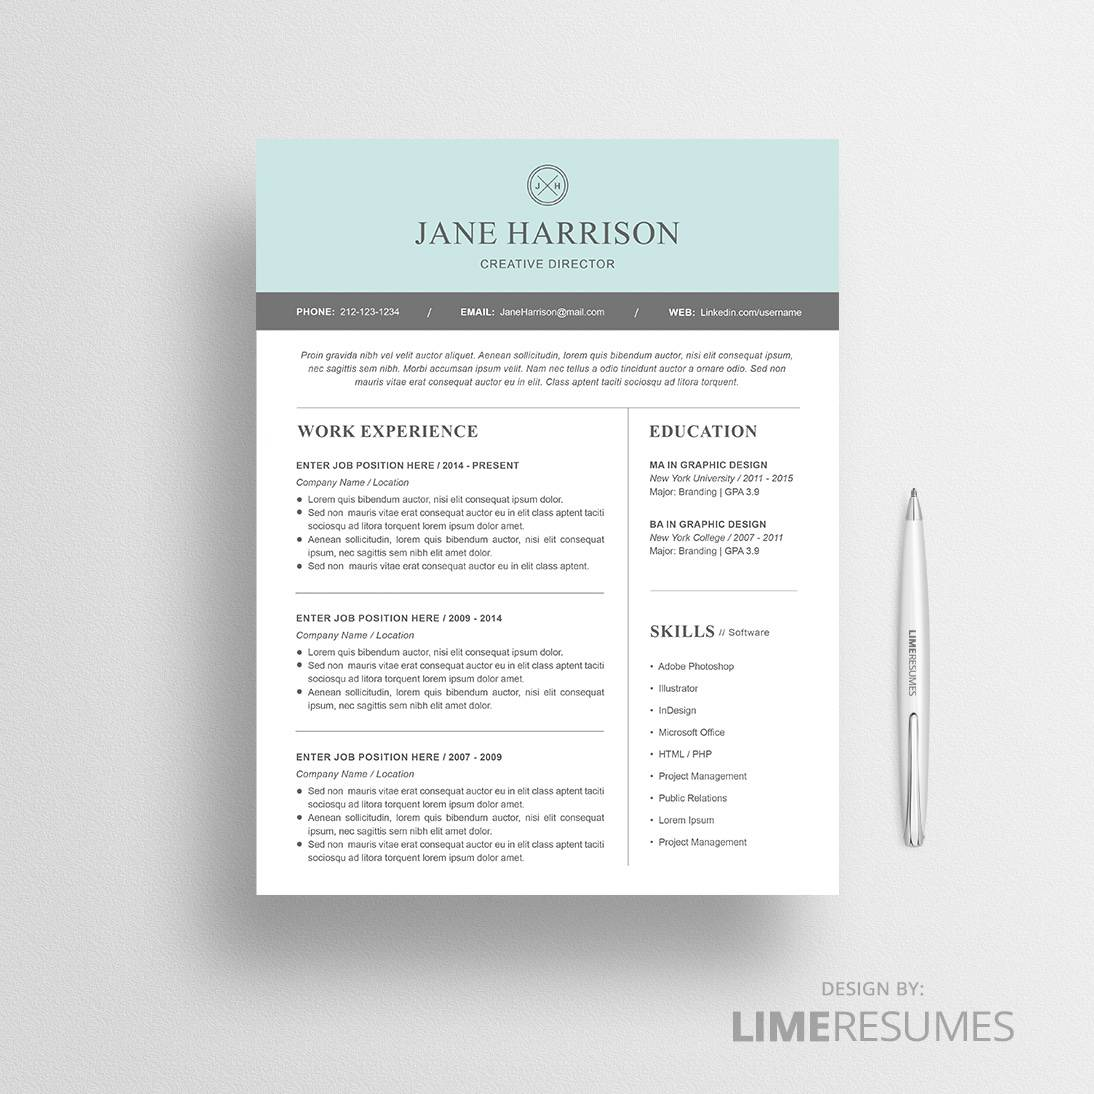 Modern resume template for microsoft word limeresumes for Free reume templates